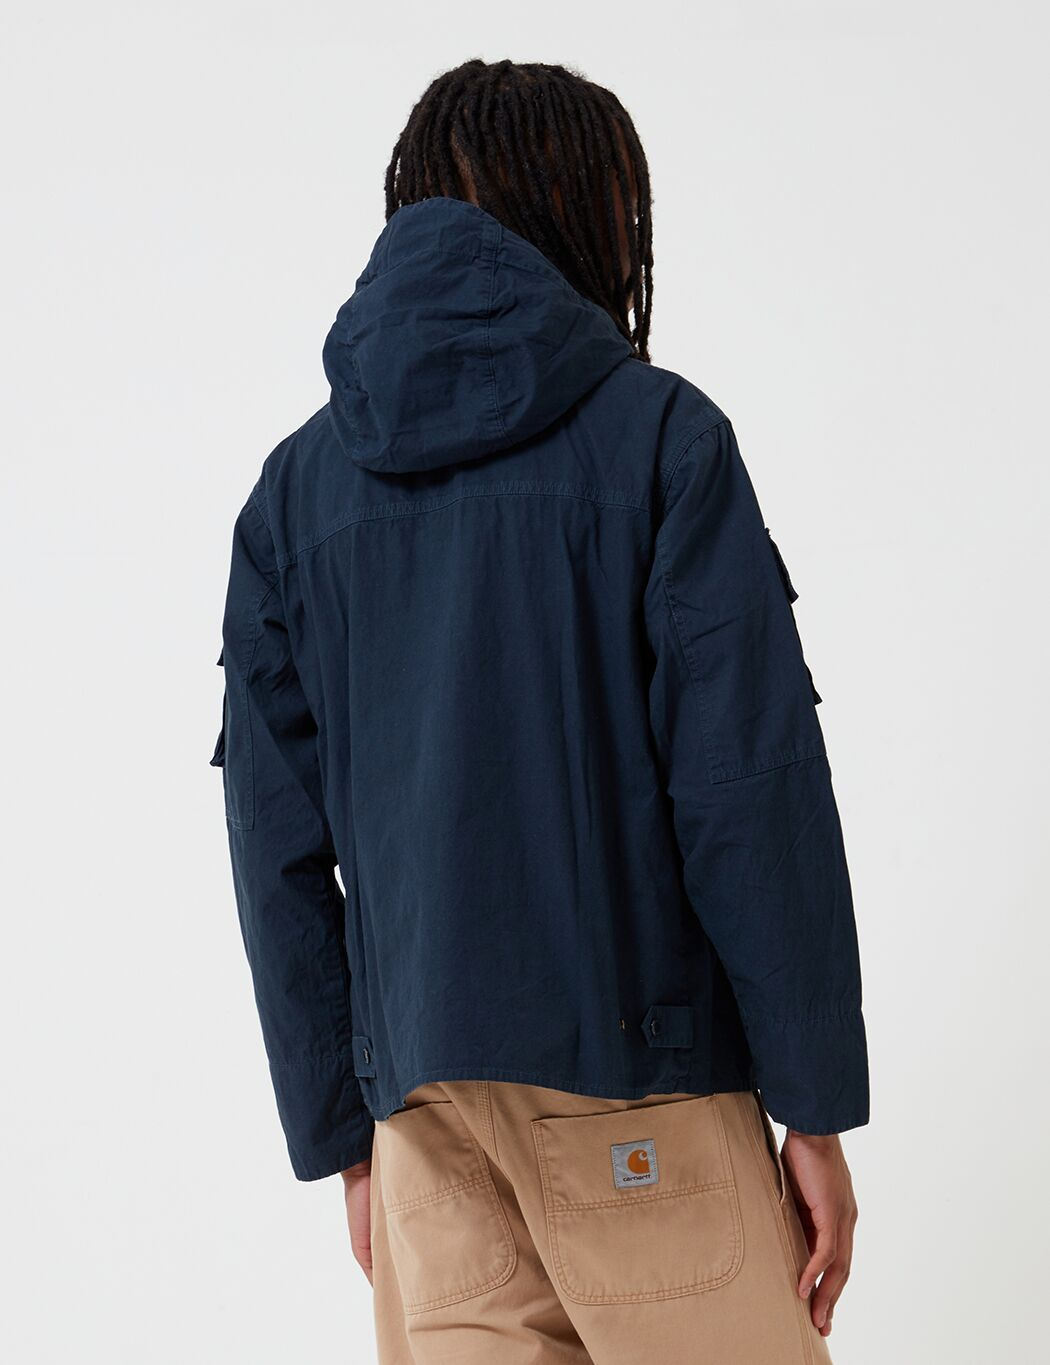 Barbour x Engineered Garments Cowen Casual-Jacke aus gewaschenem - Marine-Blau